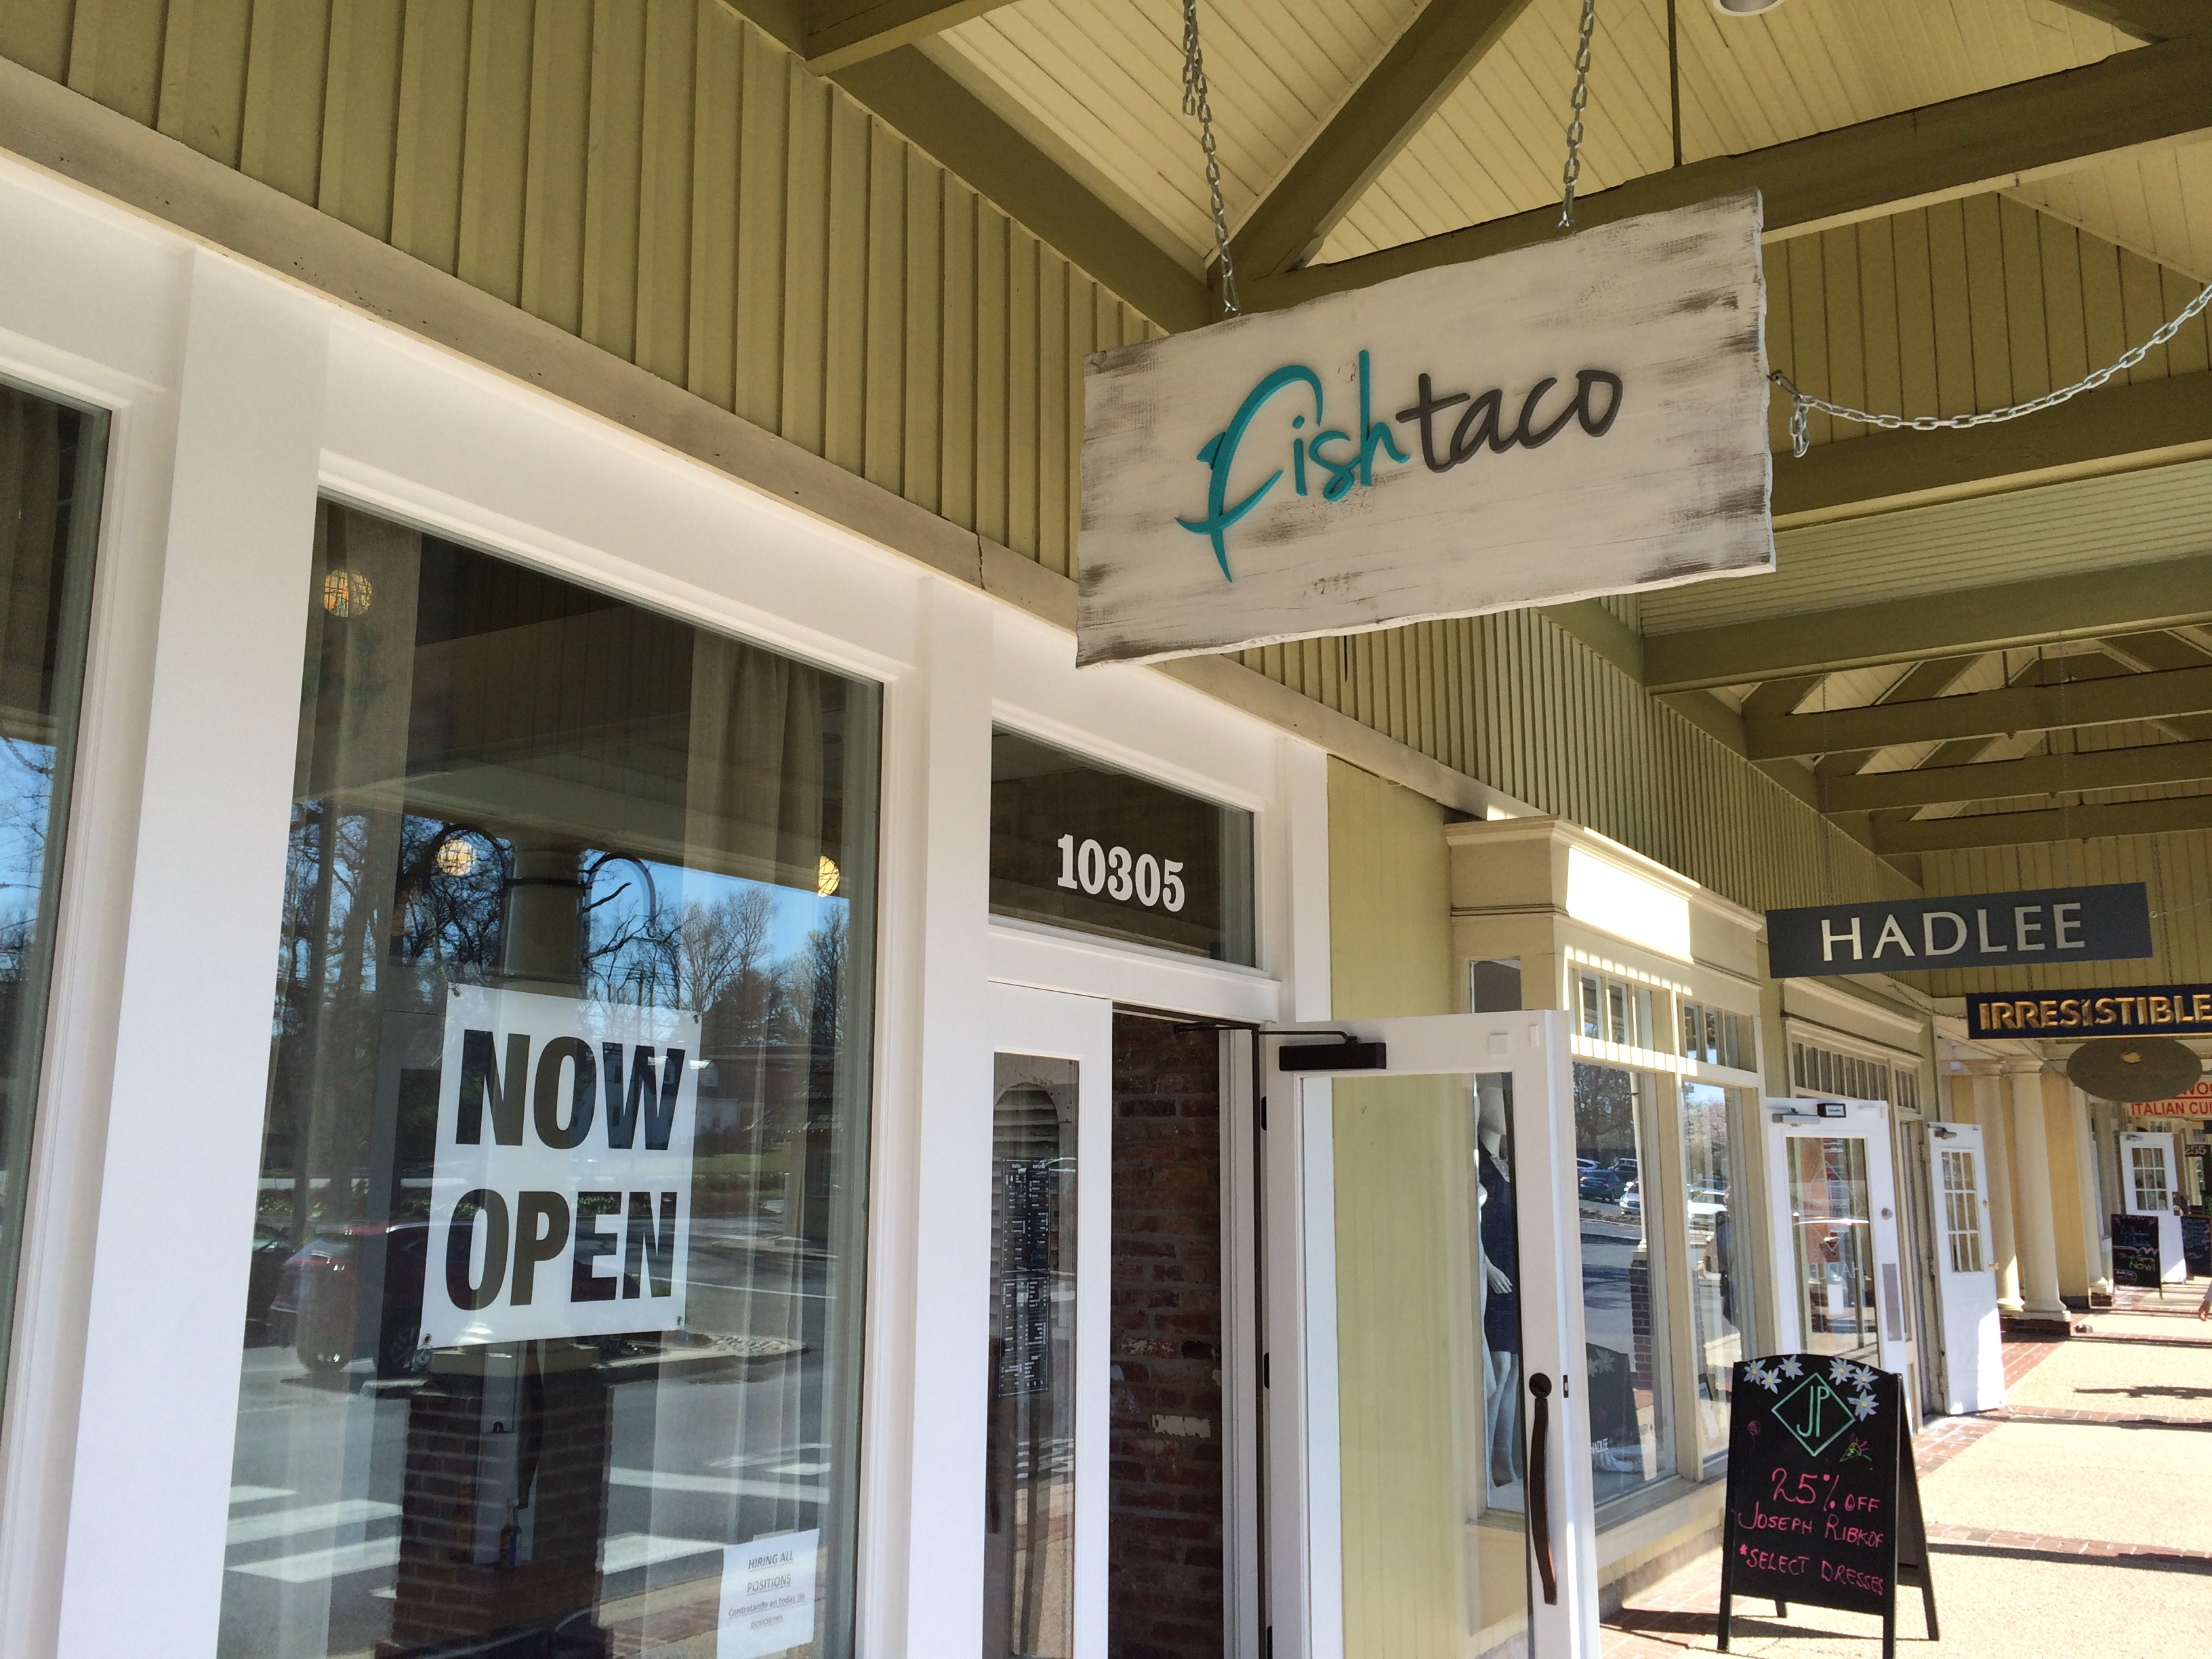 fish taco opens at wildwood shopping center bethesda